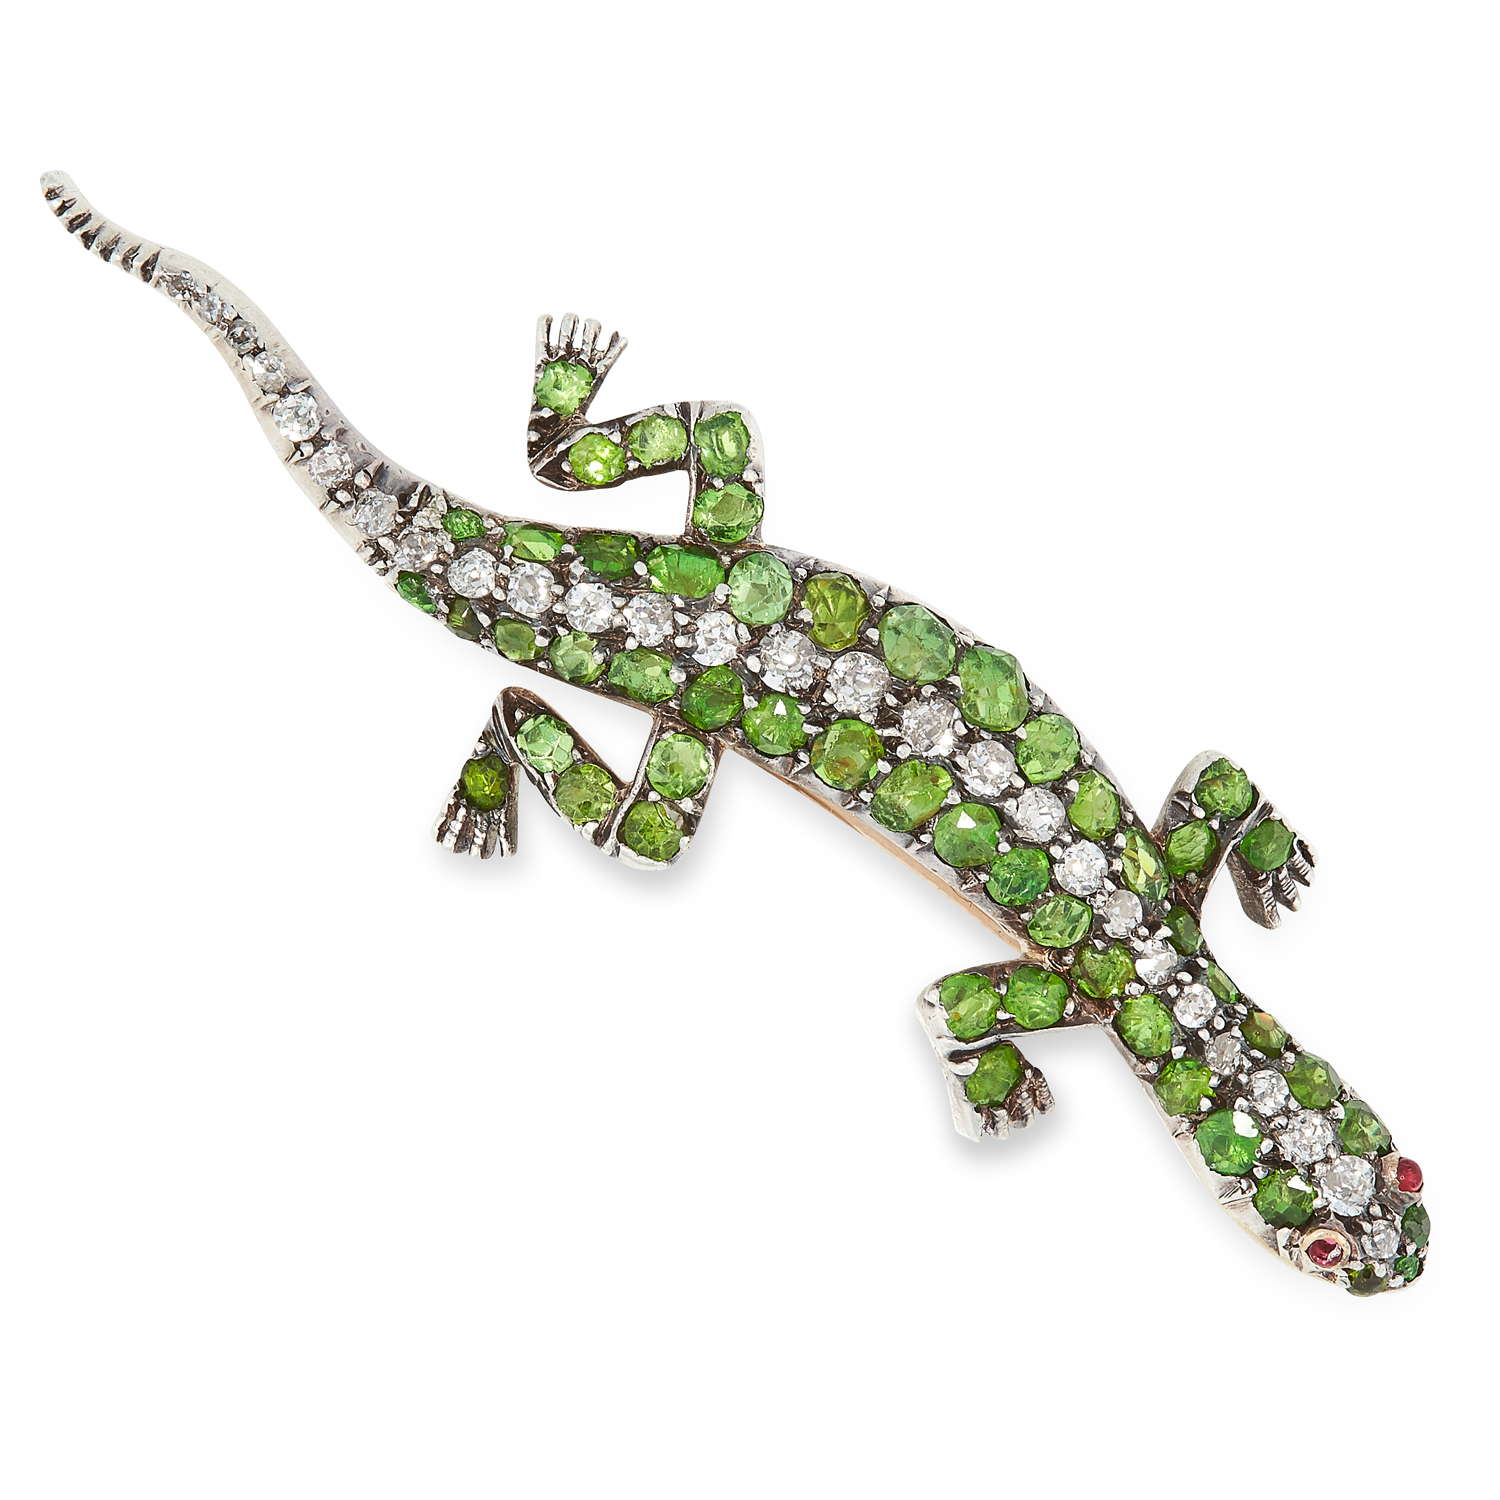 AN ANTIQUE DEMANTOID GARNET, DIAMOND AND RUBY SALAMANDER BROOCH in gold and silver, set with cushion